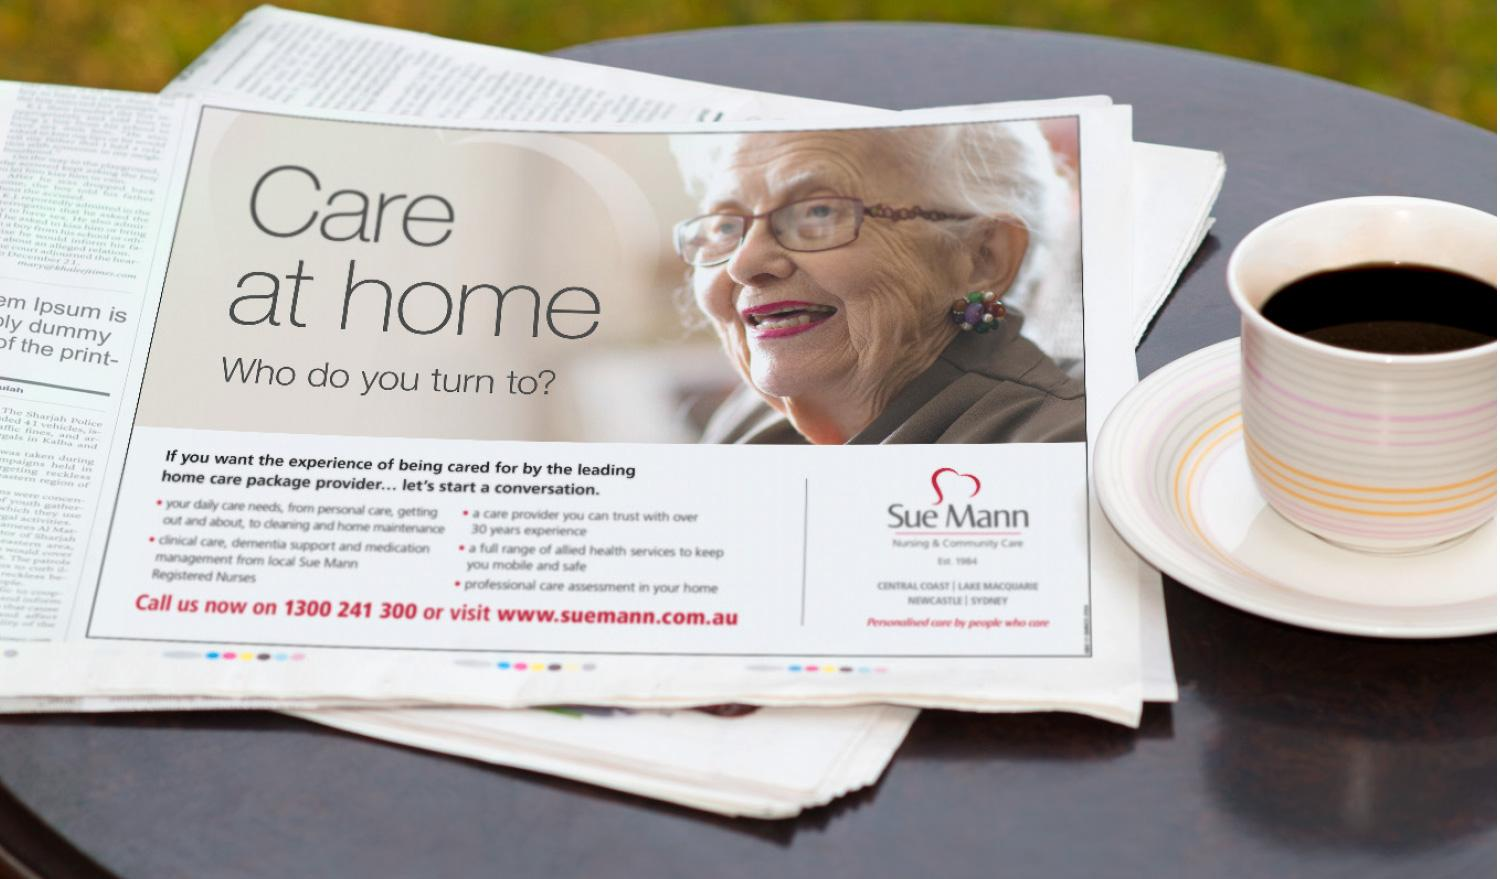 Sue Mann – Care at home press ad